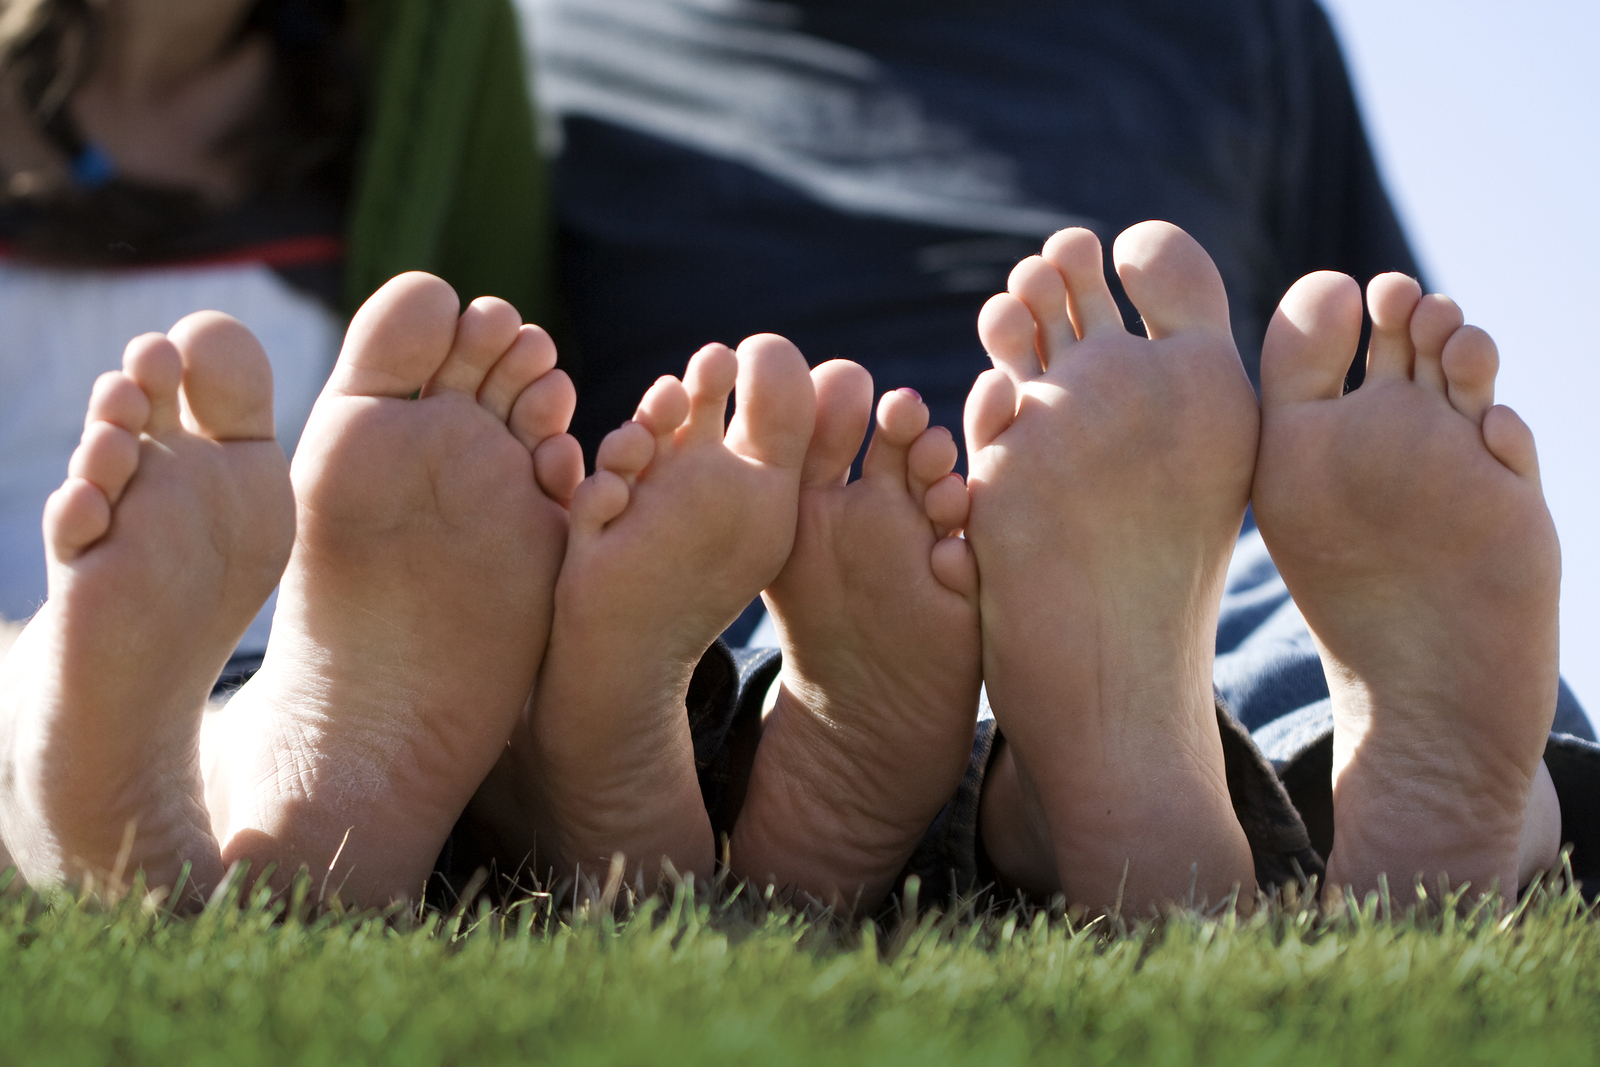 Three sets of clean happy feet all in a row on a sunny day. This is a great photo for a foot doctor (Podiatry or podiatric medicine) website or marketing materials. ** Note: Slight blurriness, best at smaller sizes